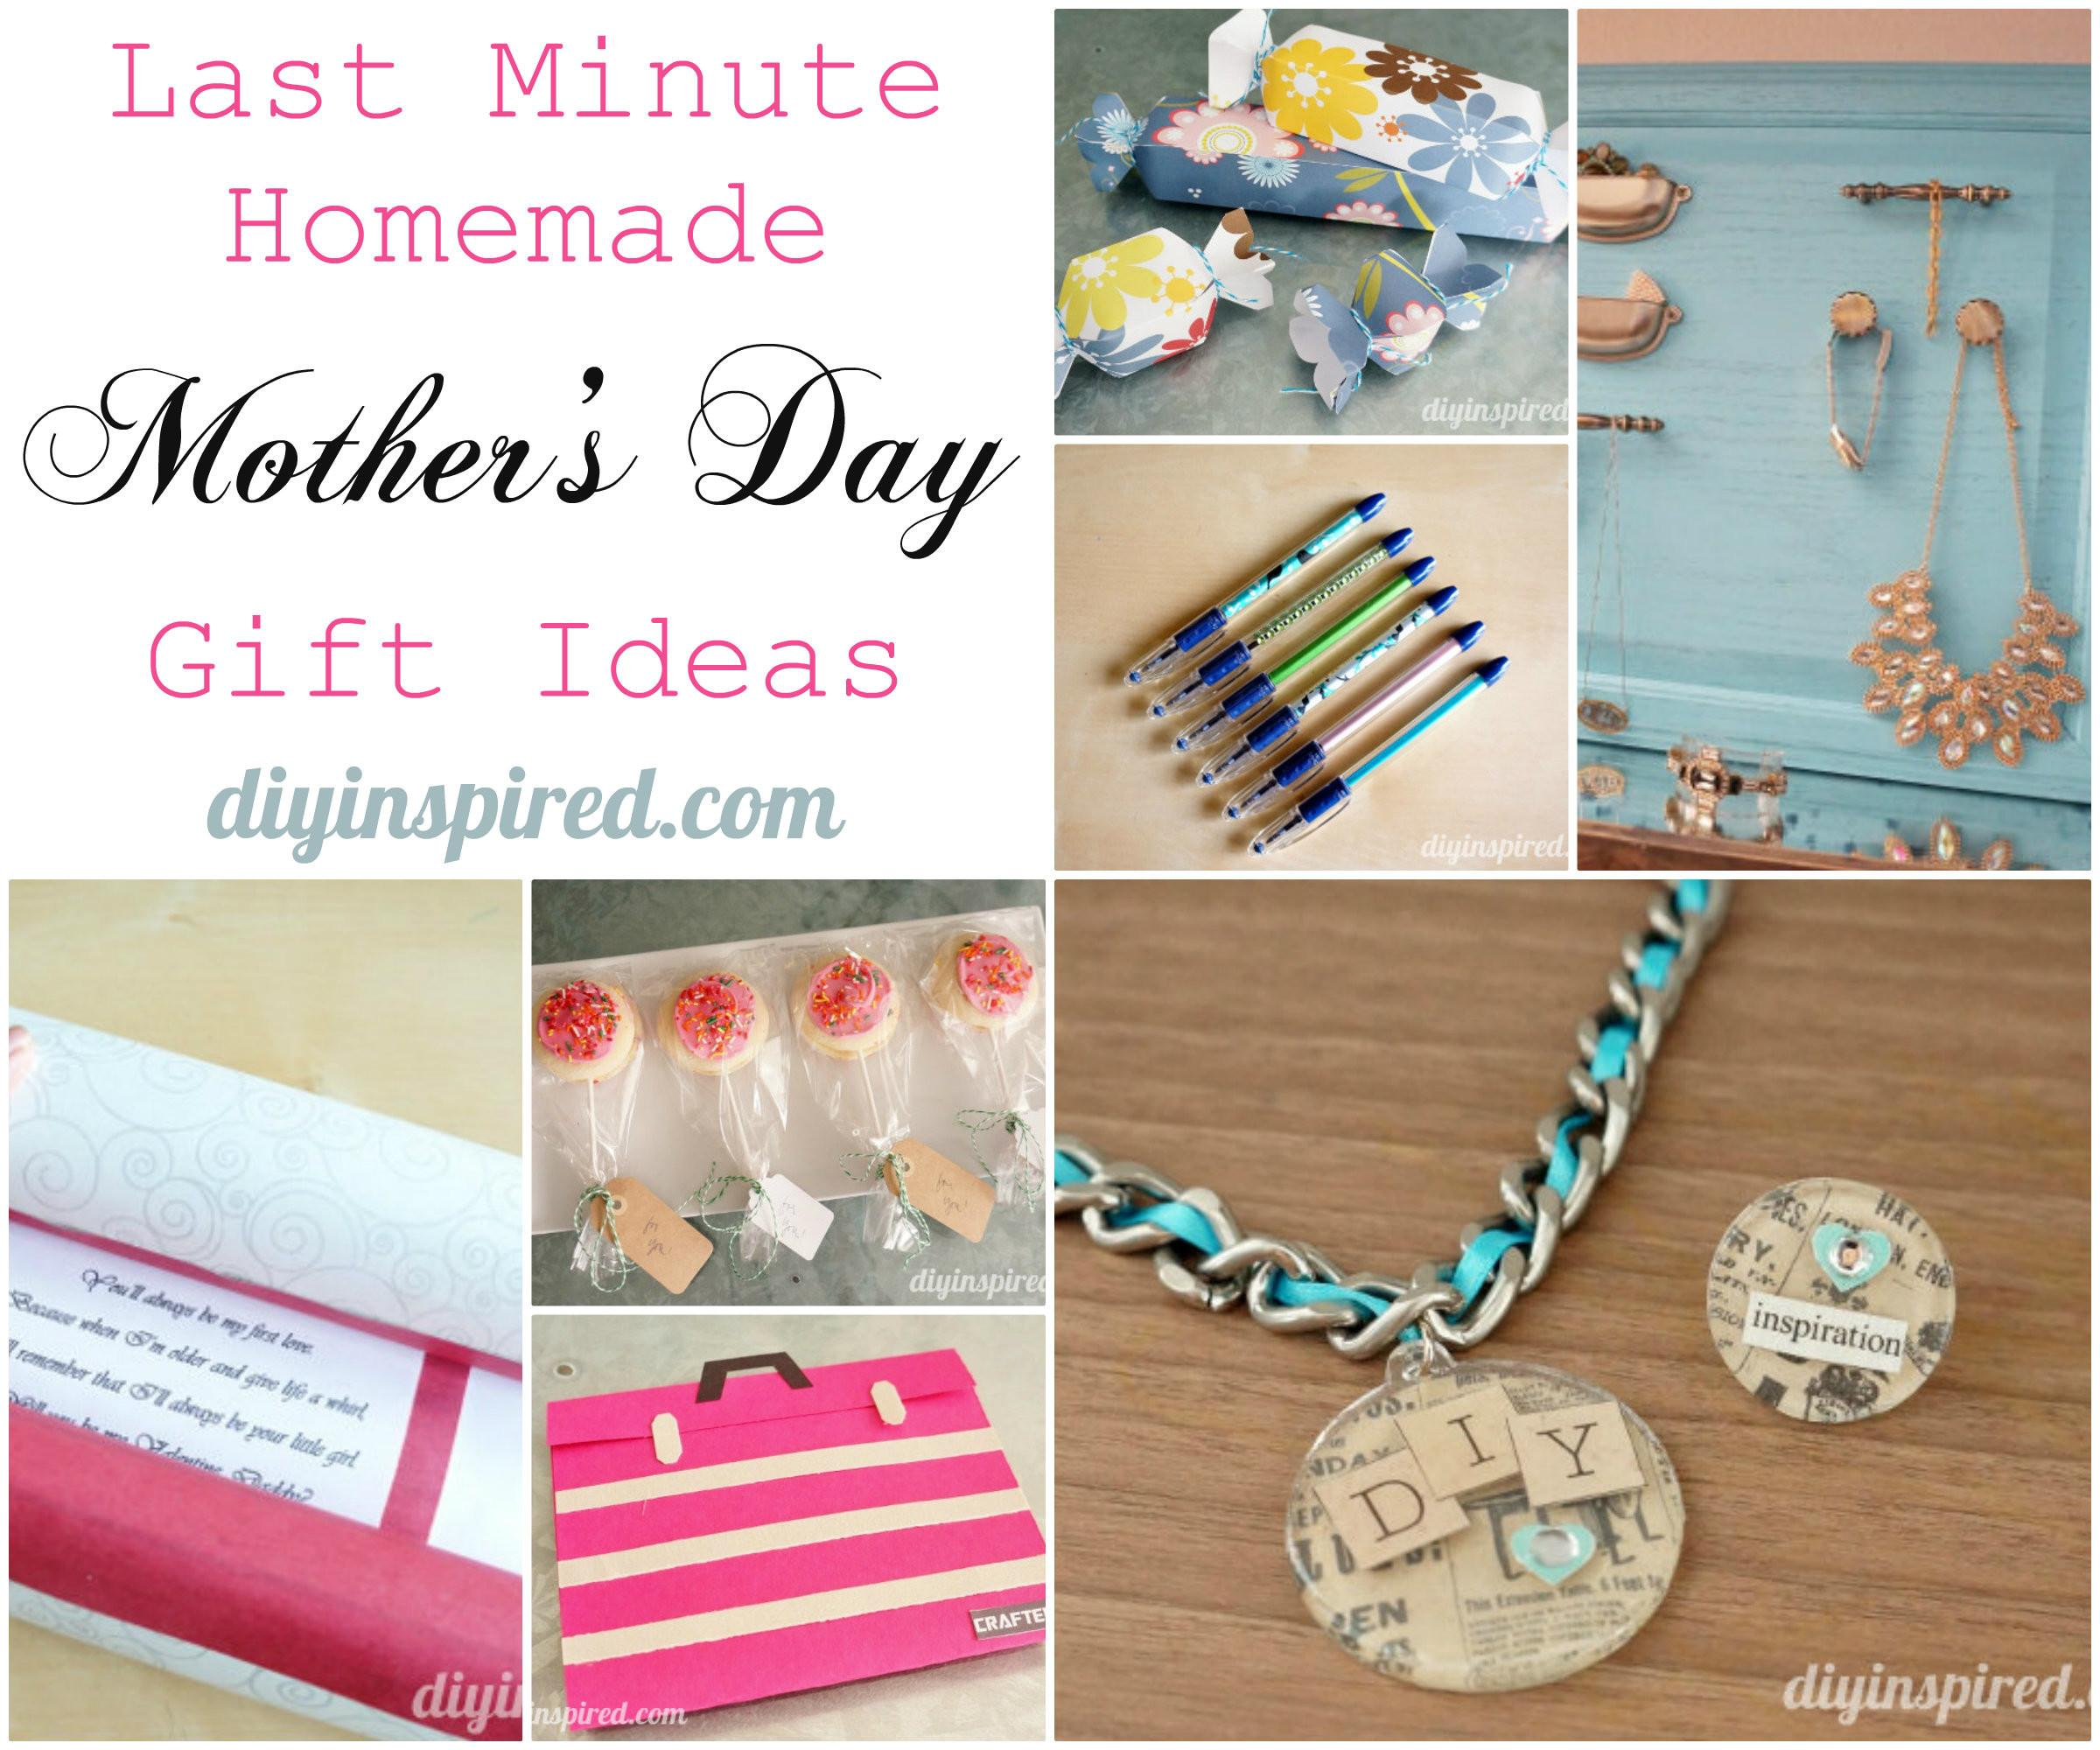 Diy Gift Idea Crafthubs Last Minute Homemade